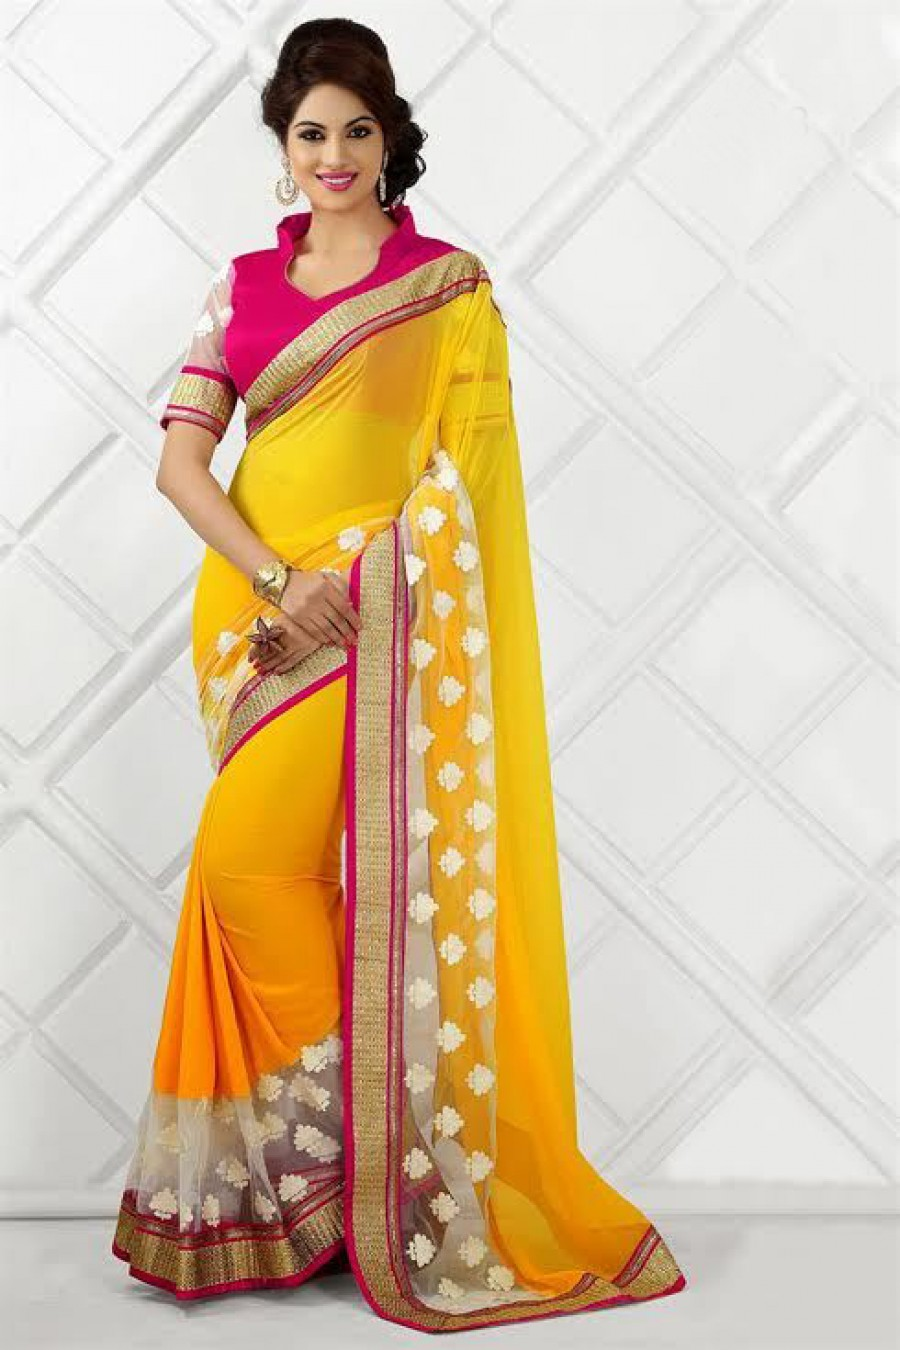 Buy  Yellow georgette with white net  worked belt designer saree with pink artsilk blouse with comes  worked net white sleev.. Online